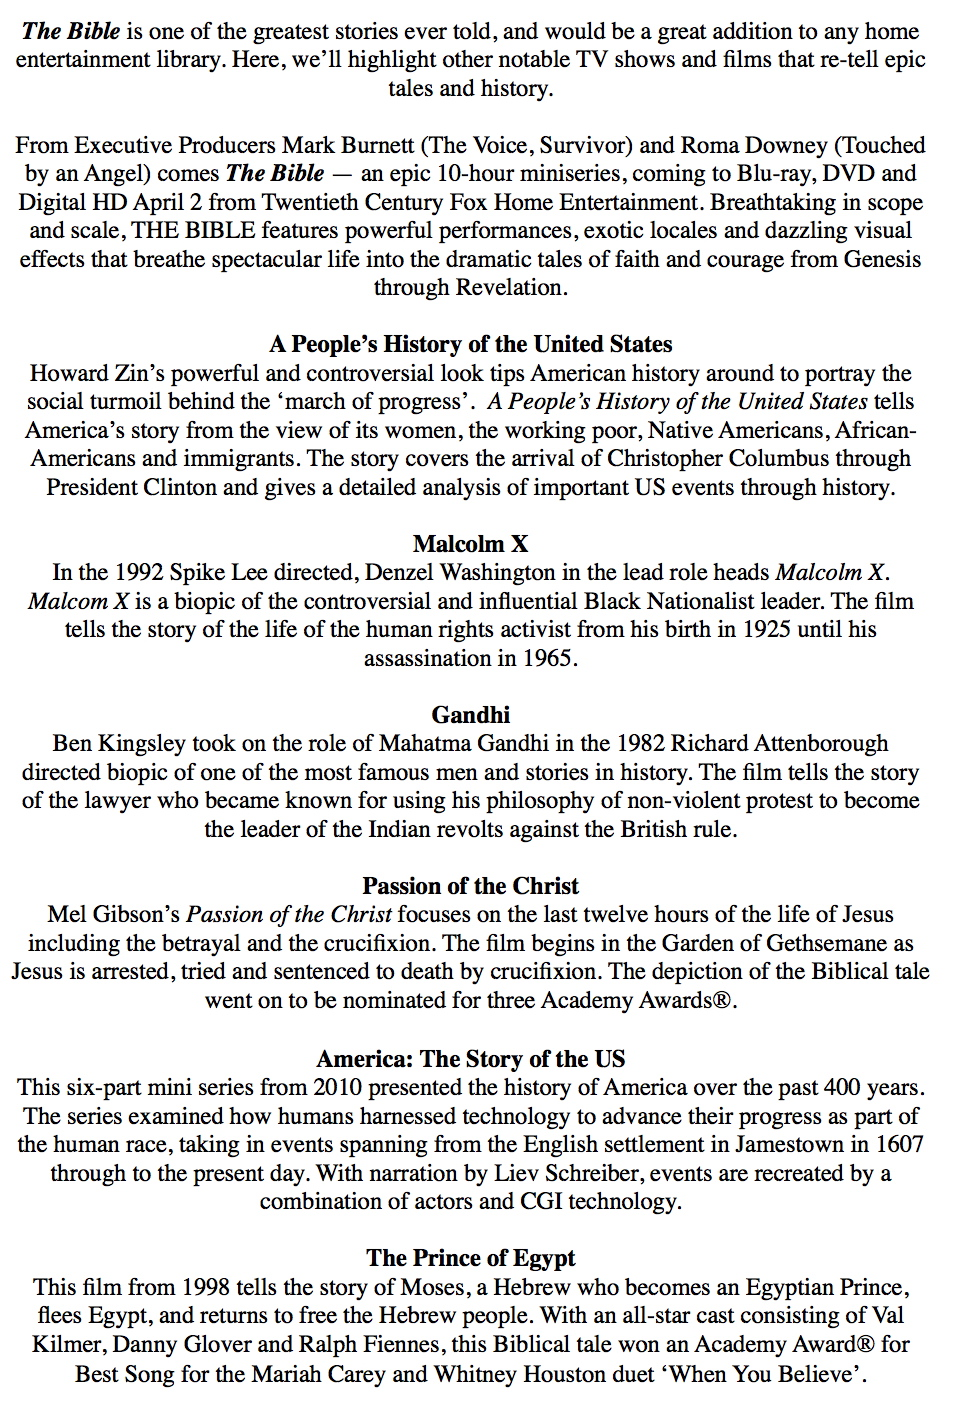 The Bible Greatest Stories Ever Told Feature